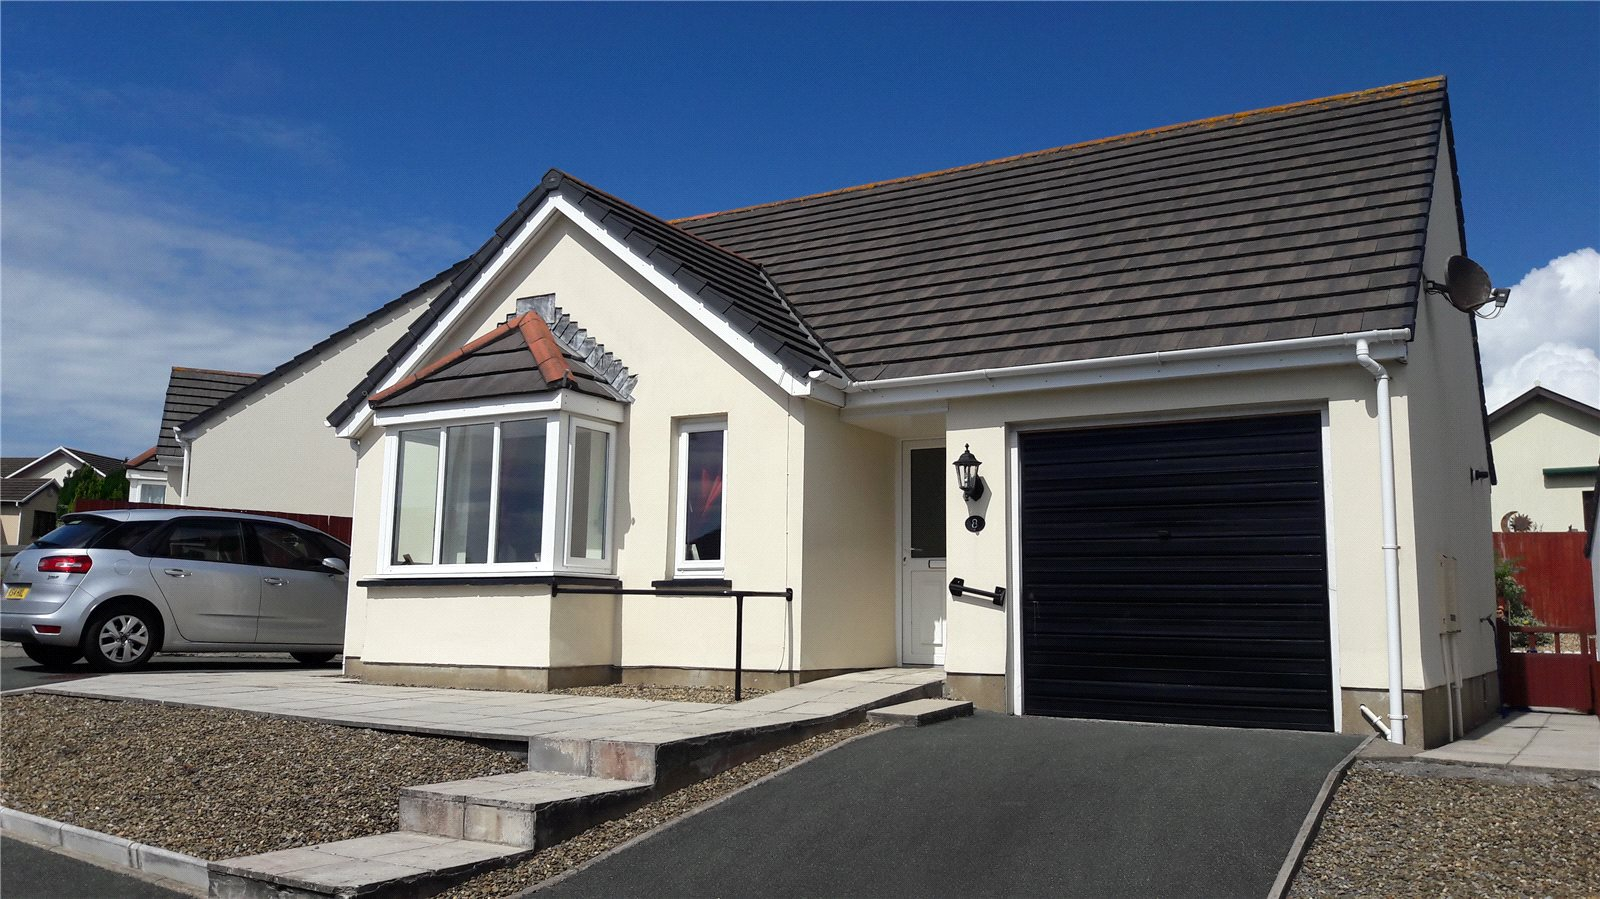 3 Bedrooms Detached Bungalow for sale in Donovan Reed Gardens, Pembroke Dock, Pembrokeshire